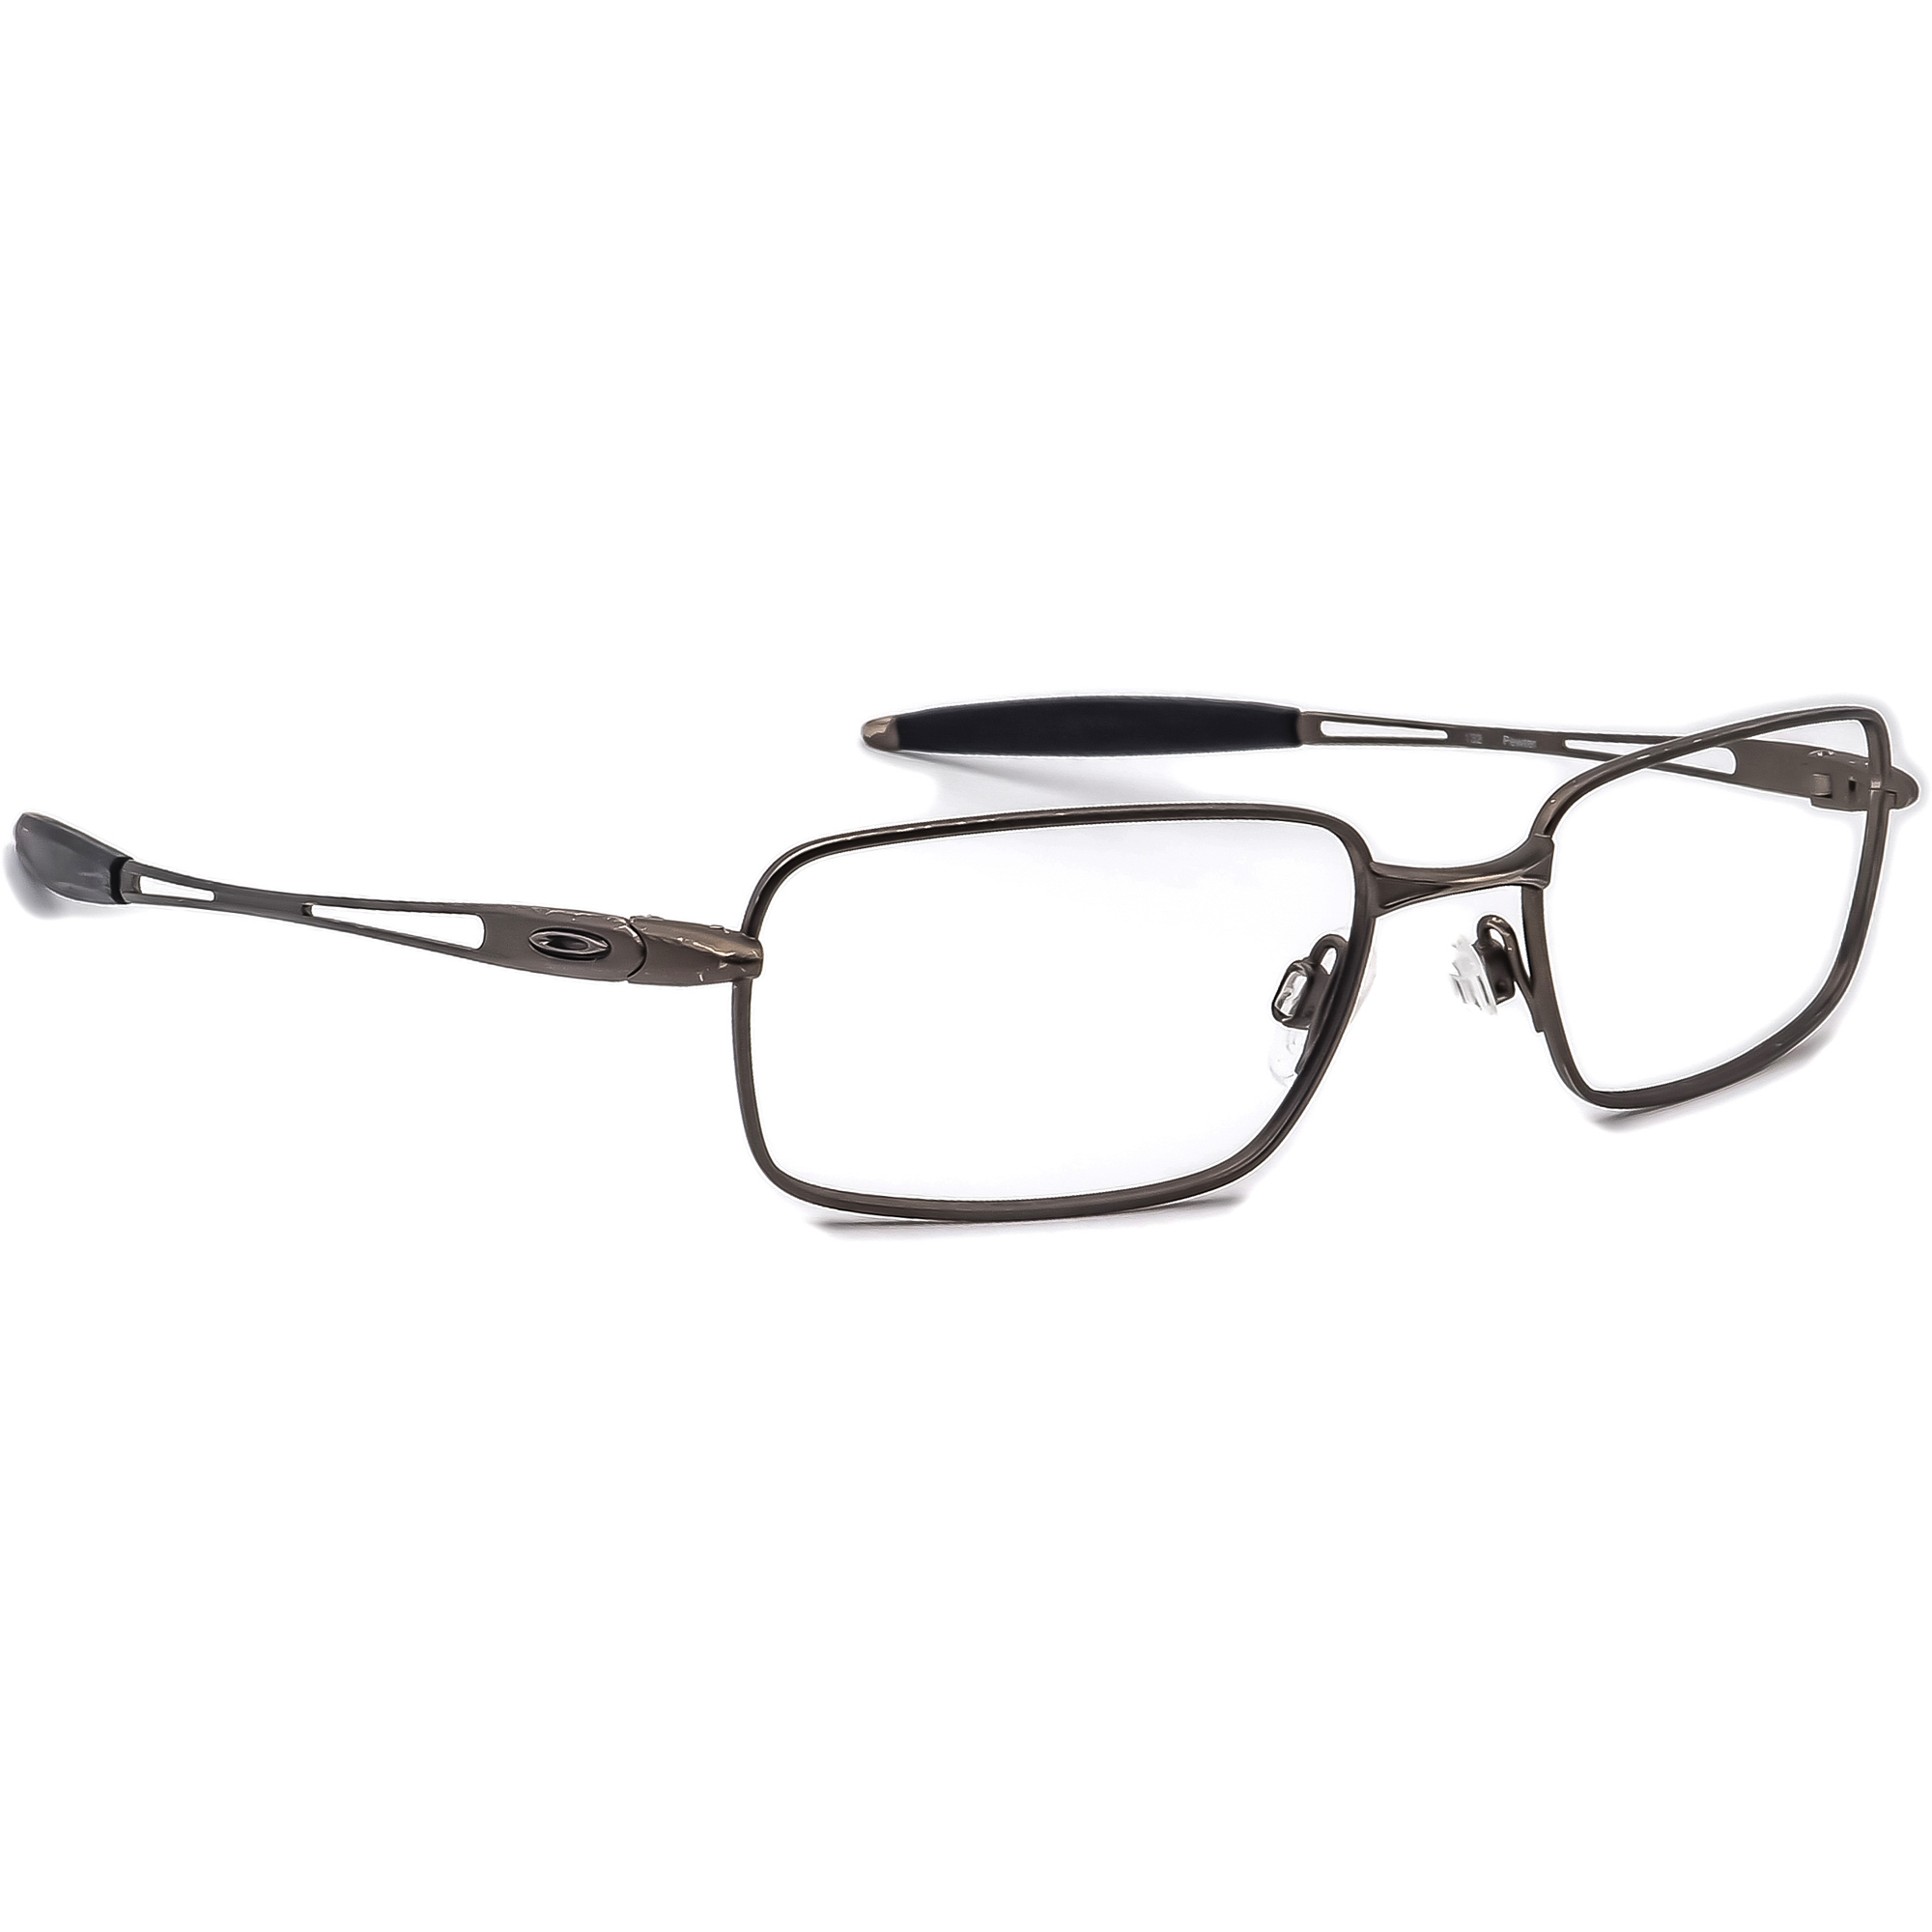 Oakley Intervene 4.0 Eyeglasses